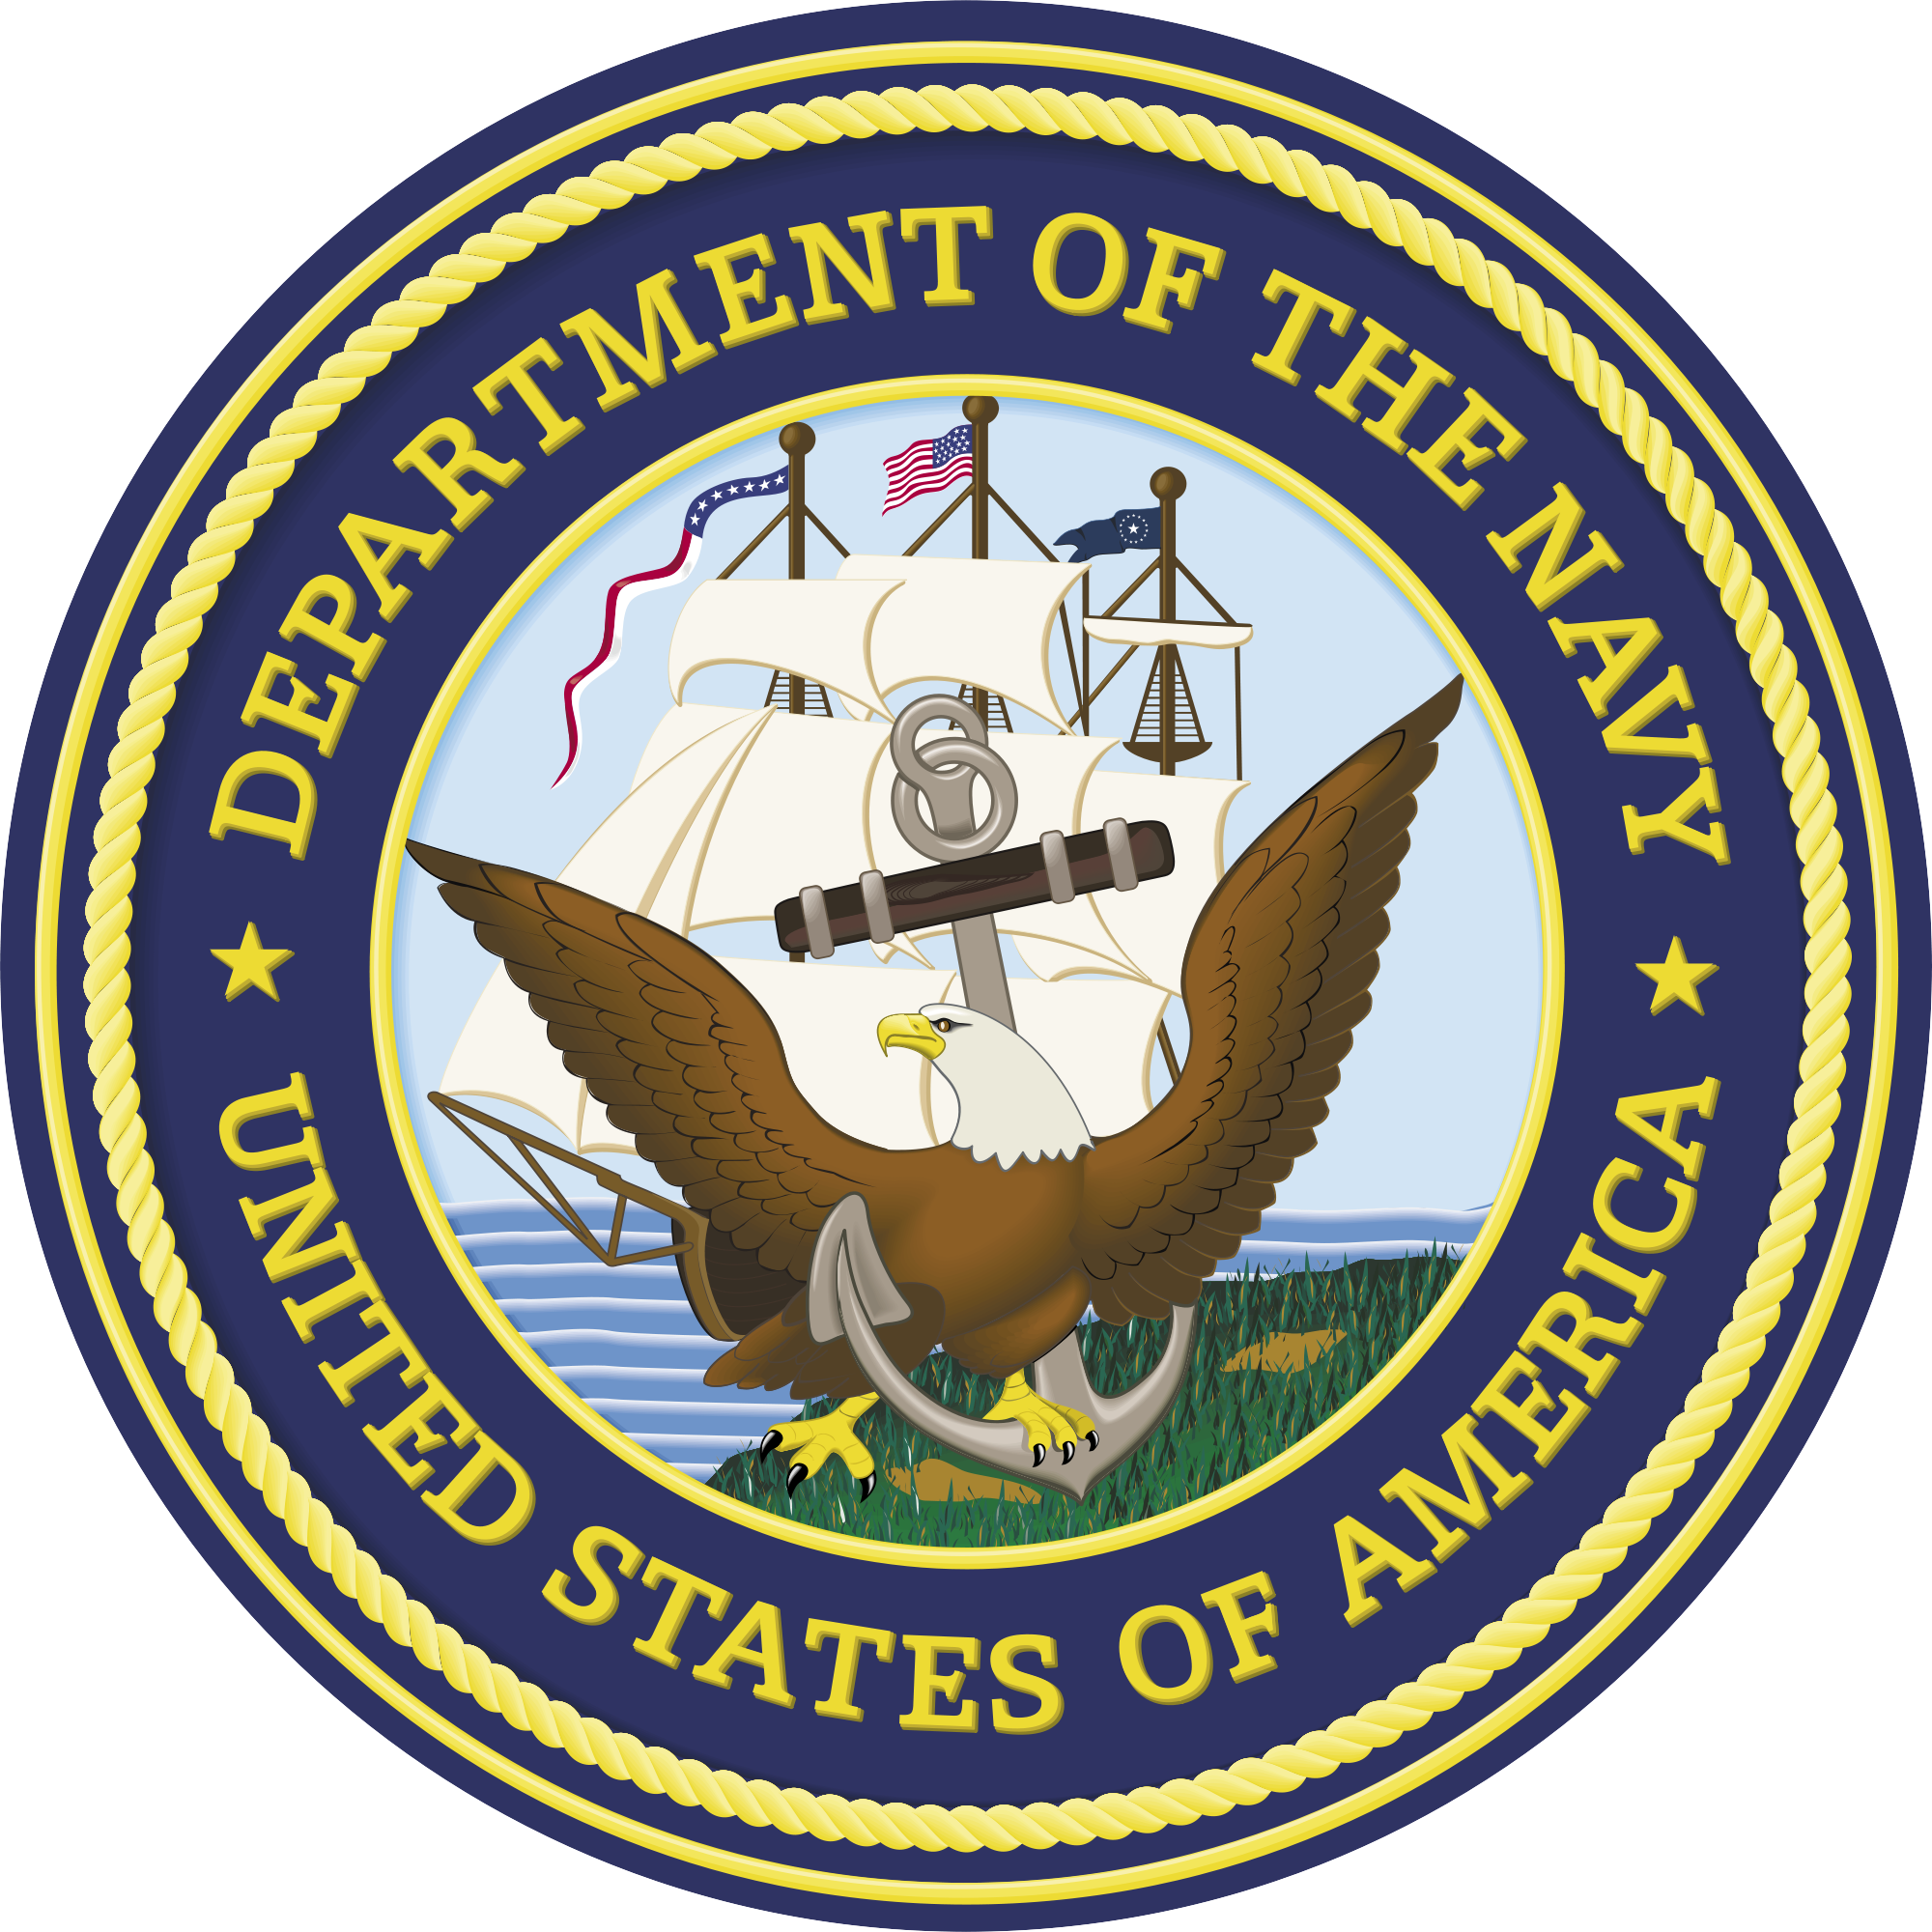 600px-United_States_Department_of_the_Navy_Seal.png